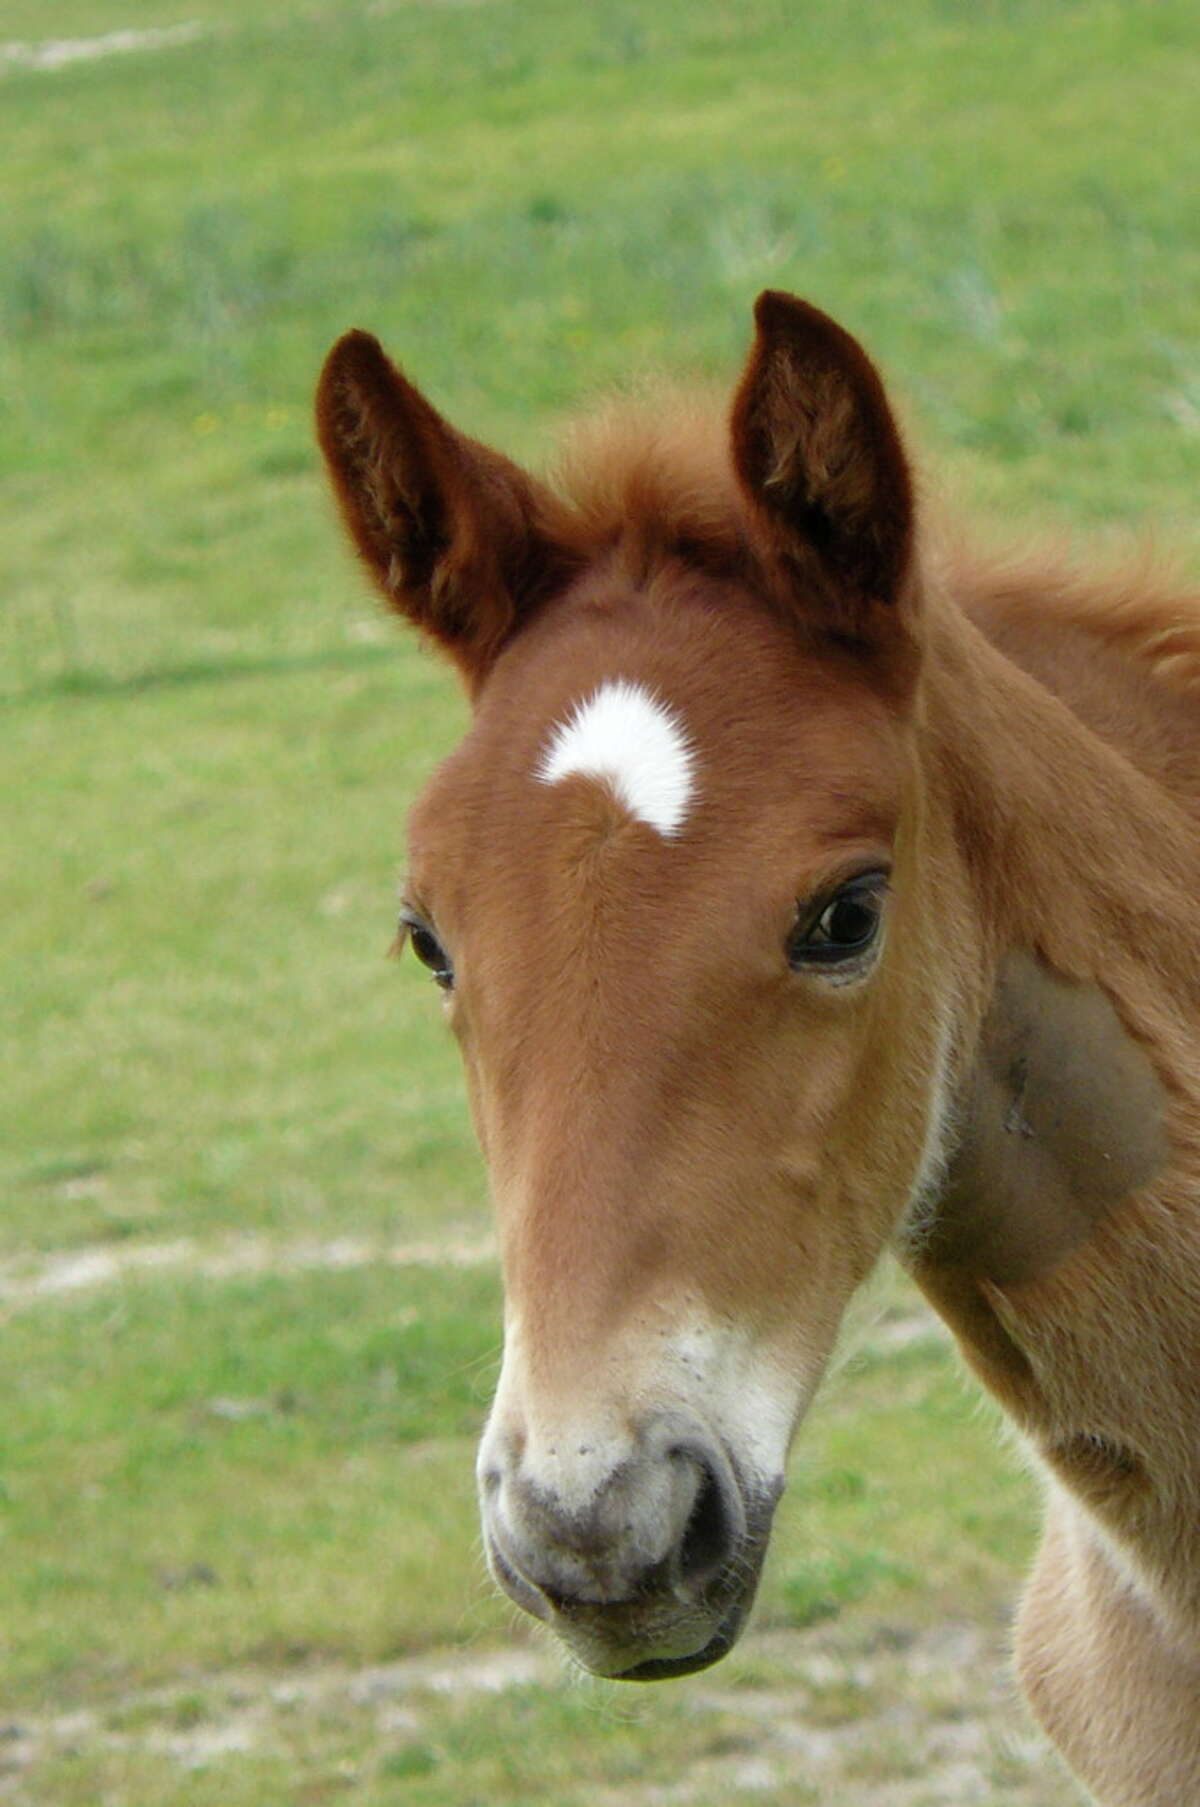 Charlotte as a filly in Oklahoma, where she spent her first two years. She joined the Houston Police Department mounted patrol in 2011 and died in a traffic accident in downtown Houston, Dec. 3, 2015.